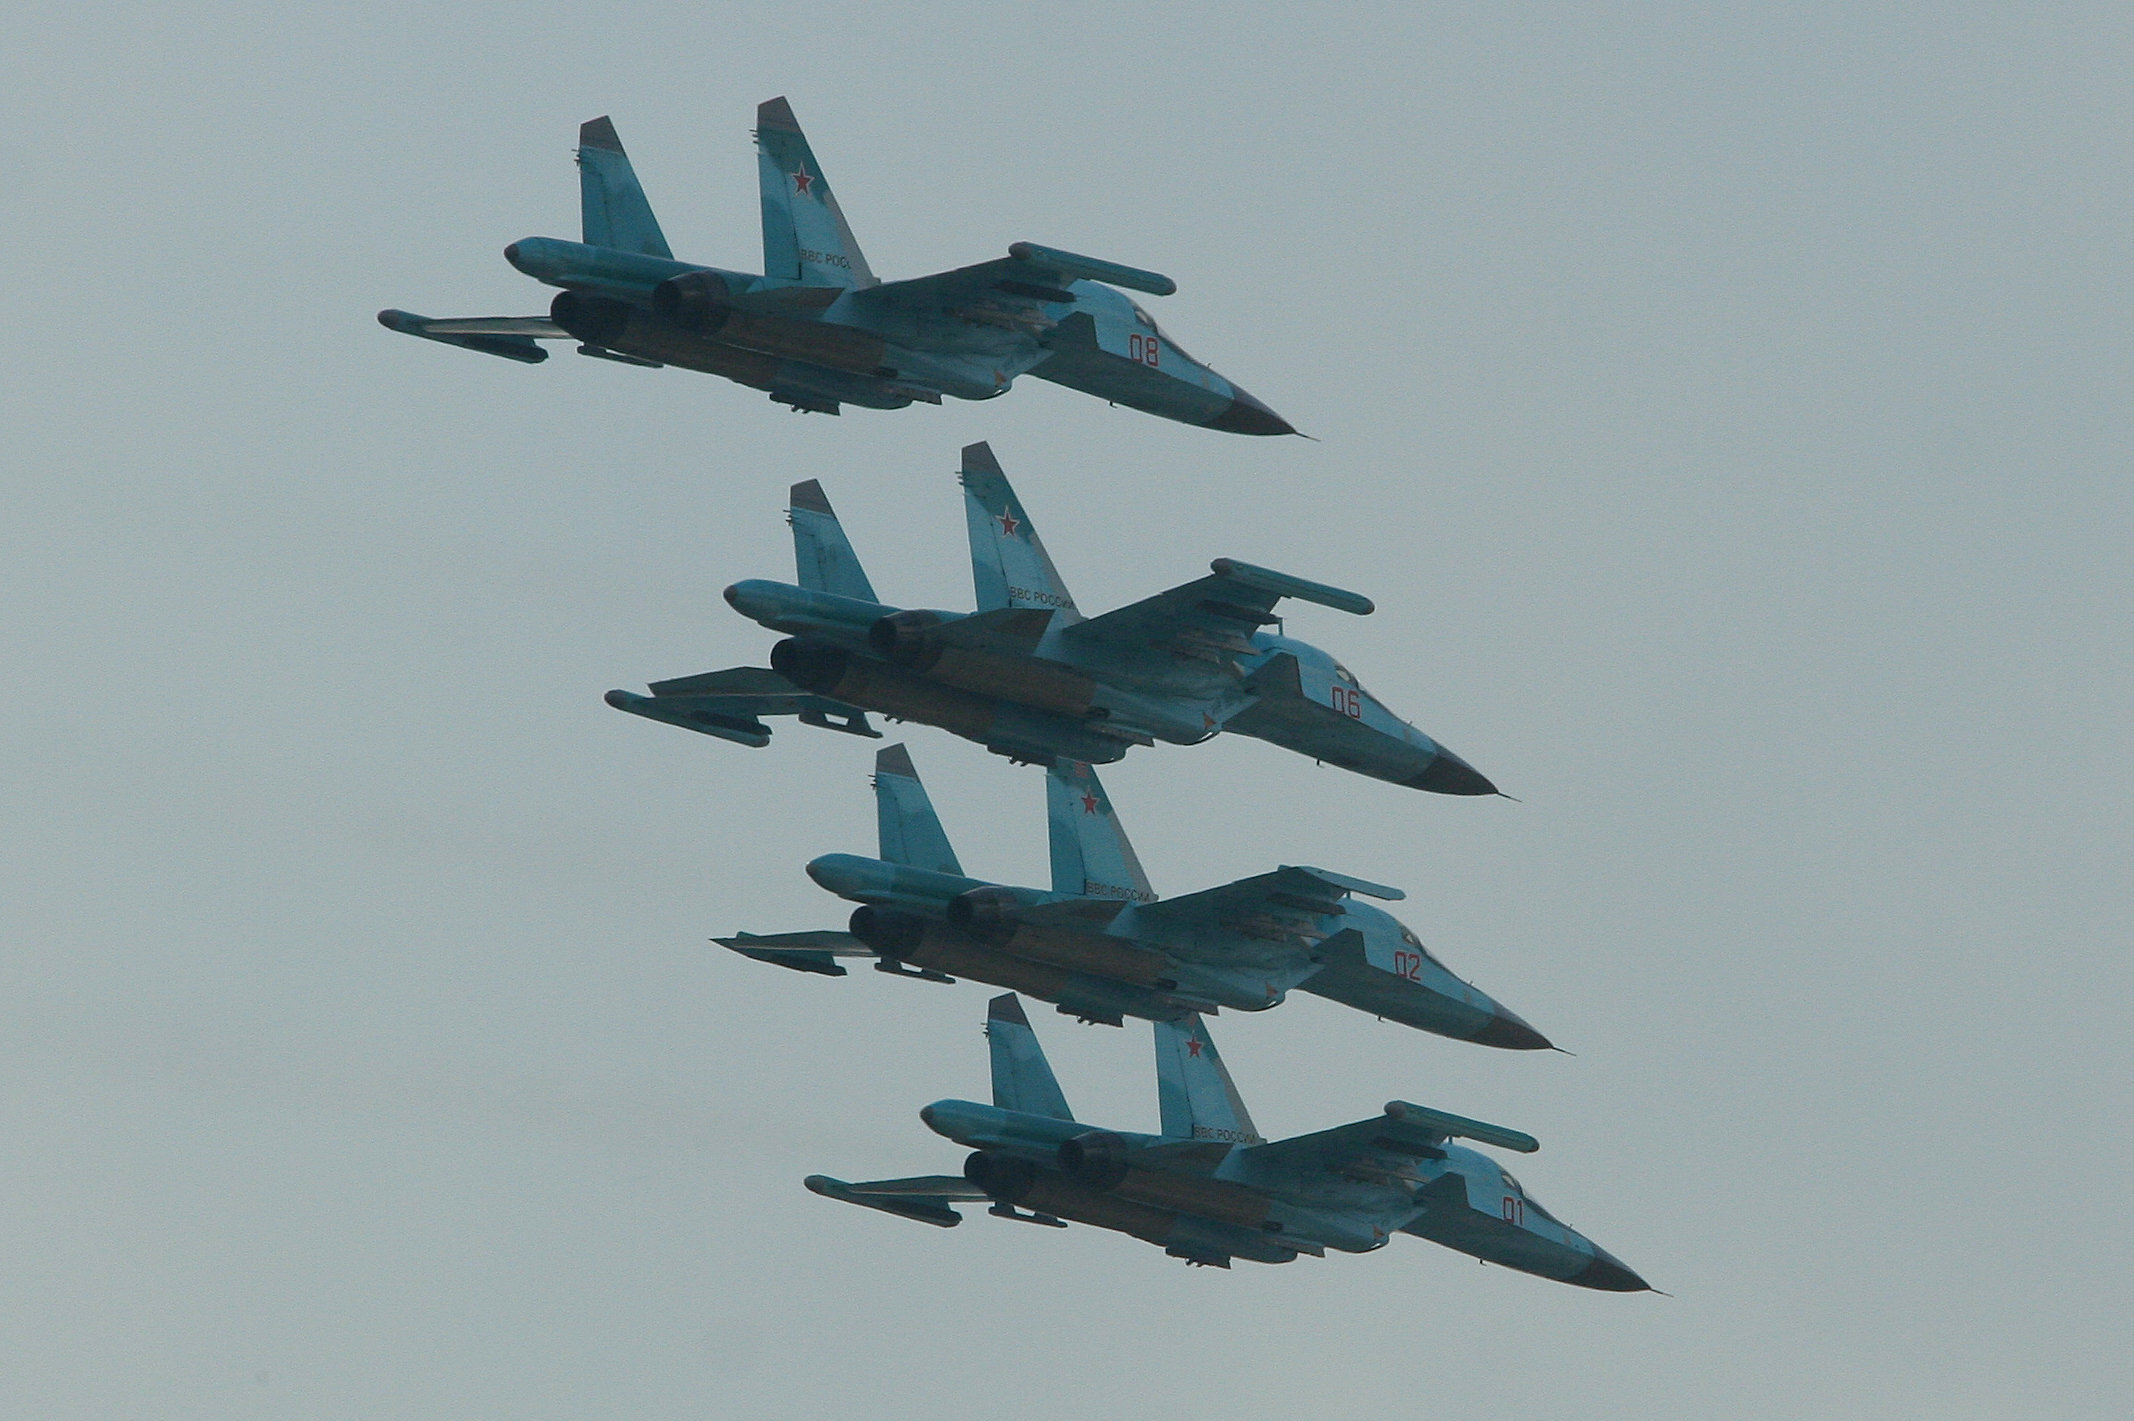 Jet formation flyby was carried out by four Su-34 Fullbacks